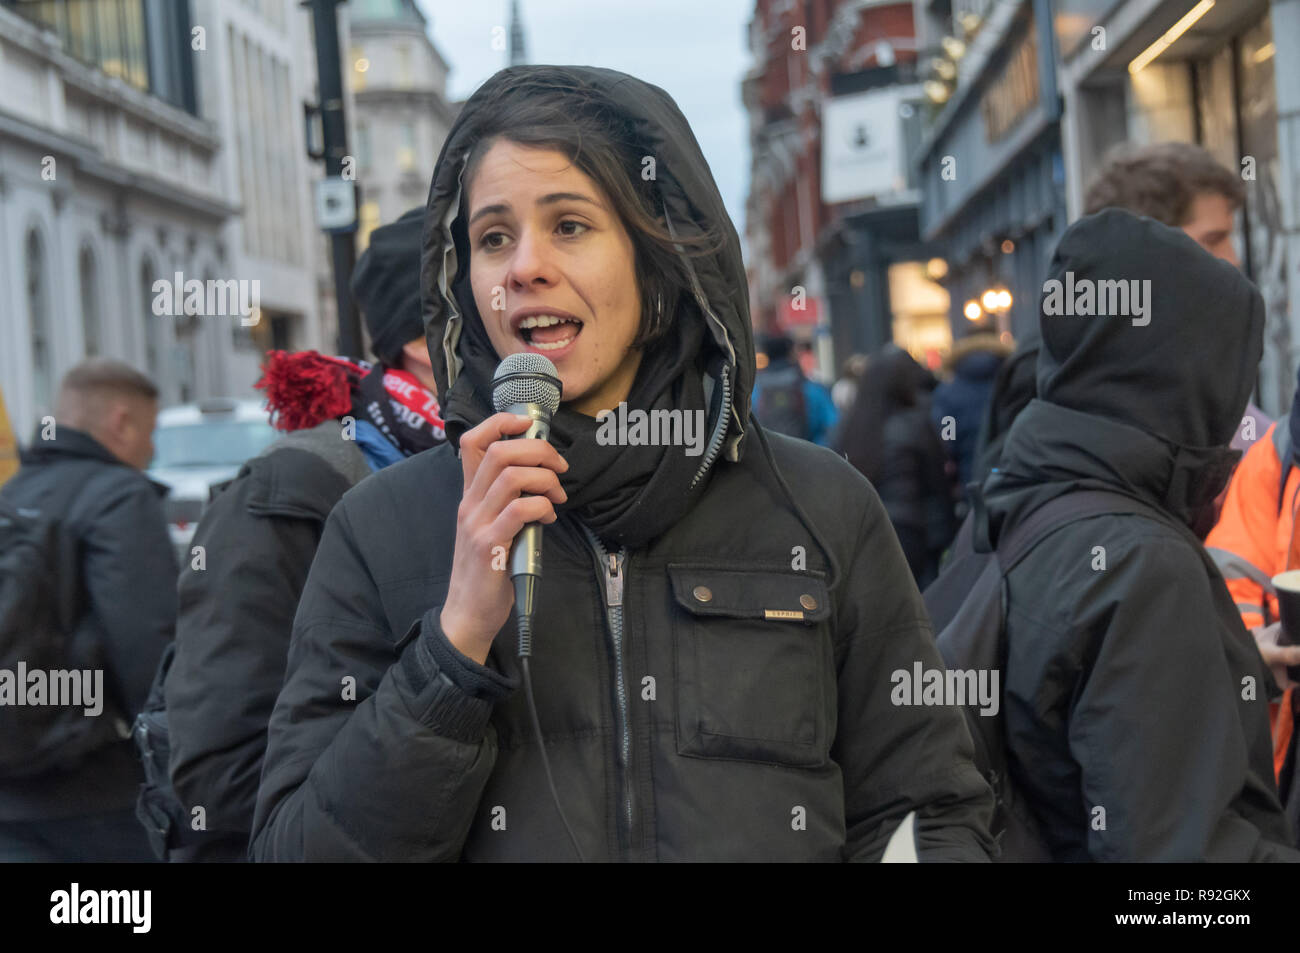 """London, UK. 18th December 2018. A speaker from Berlin community centre and pub Syndikat at the protest with London Renters Union outside the London offices of their landlord, Global Real Estate Investors Limited, owned by the secretive Pears brothers, three of the richest men in the UK, who through various """"letterbox"""" companies own around 6200 properties in Berlin, against notice to quit after being open for 33 years in Berlin-Neukölln. Credit: Peter Marshall/Alamy Live News Stock Photo"""